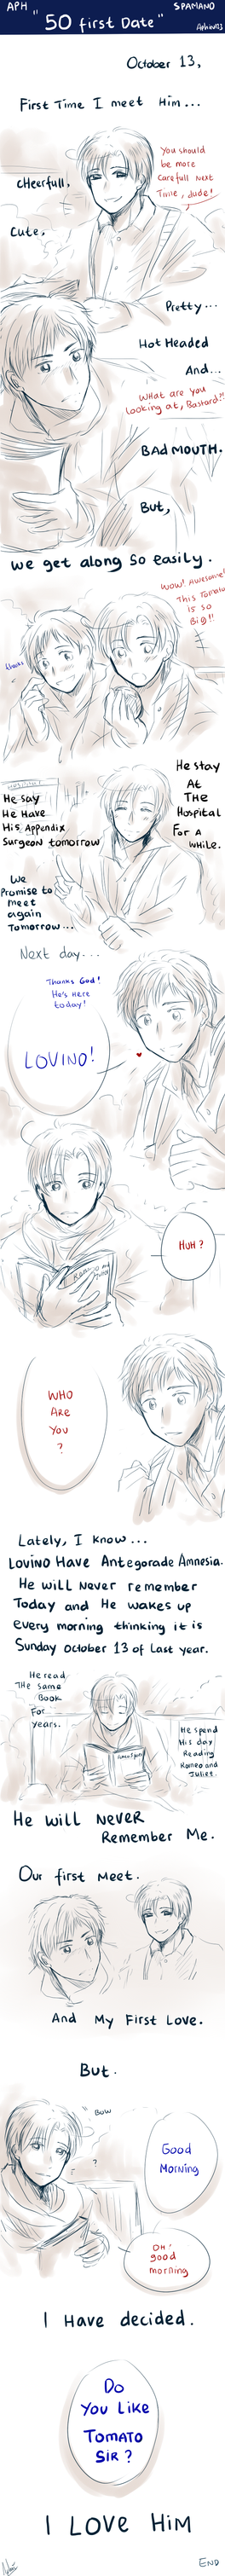 APH -- Spamano -- 50 First Dates by aphin123